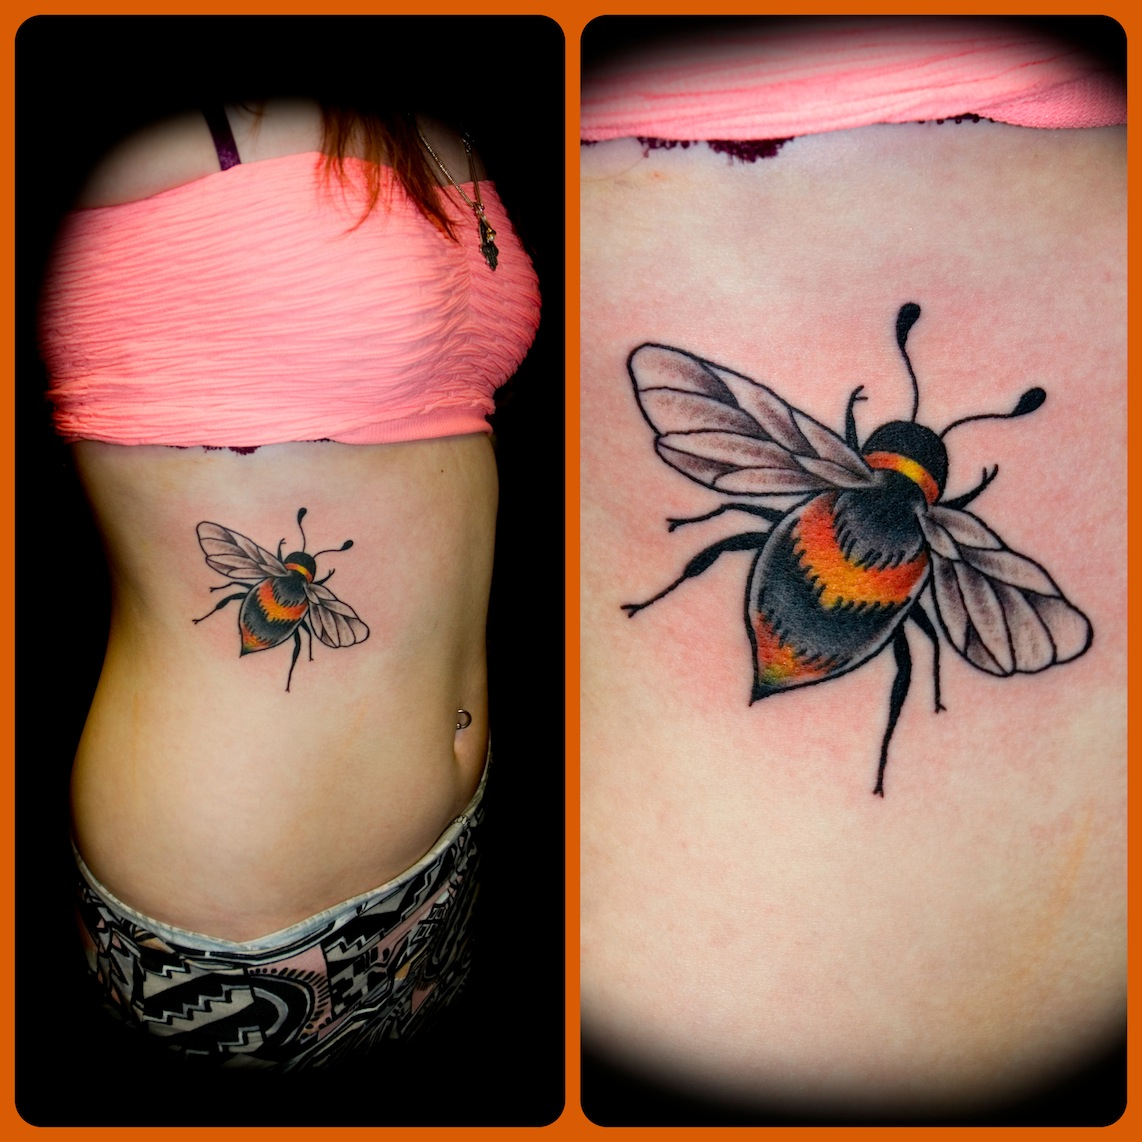 Bee Tattoo Images & Designs